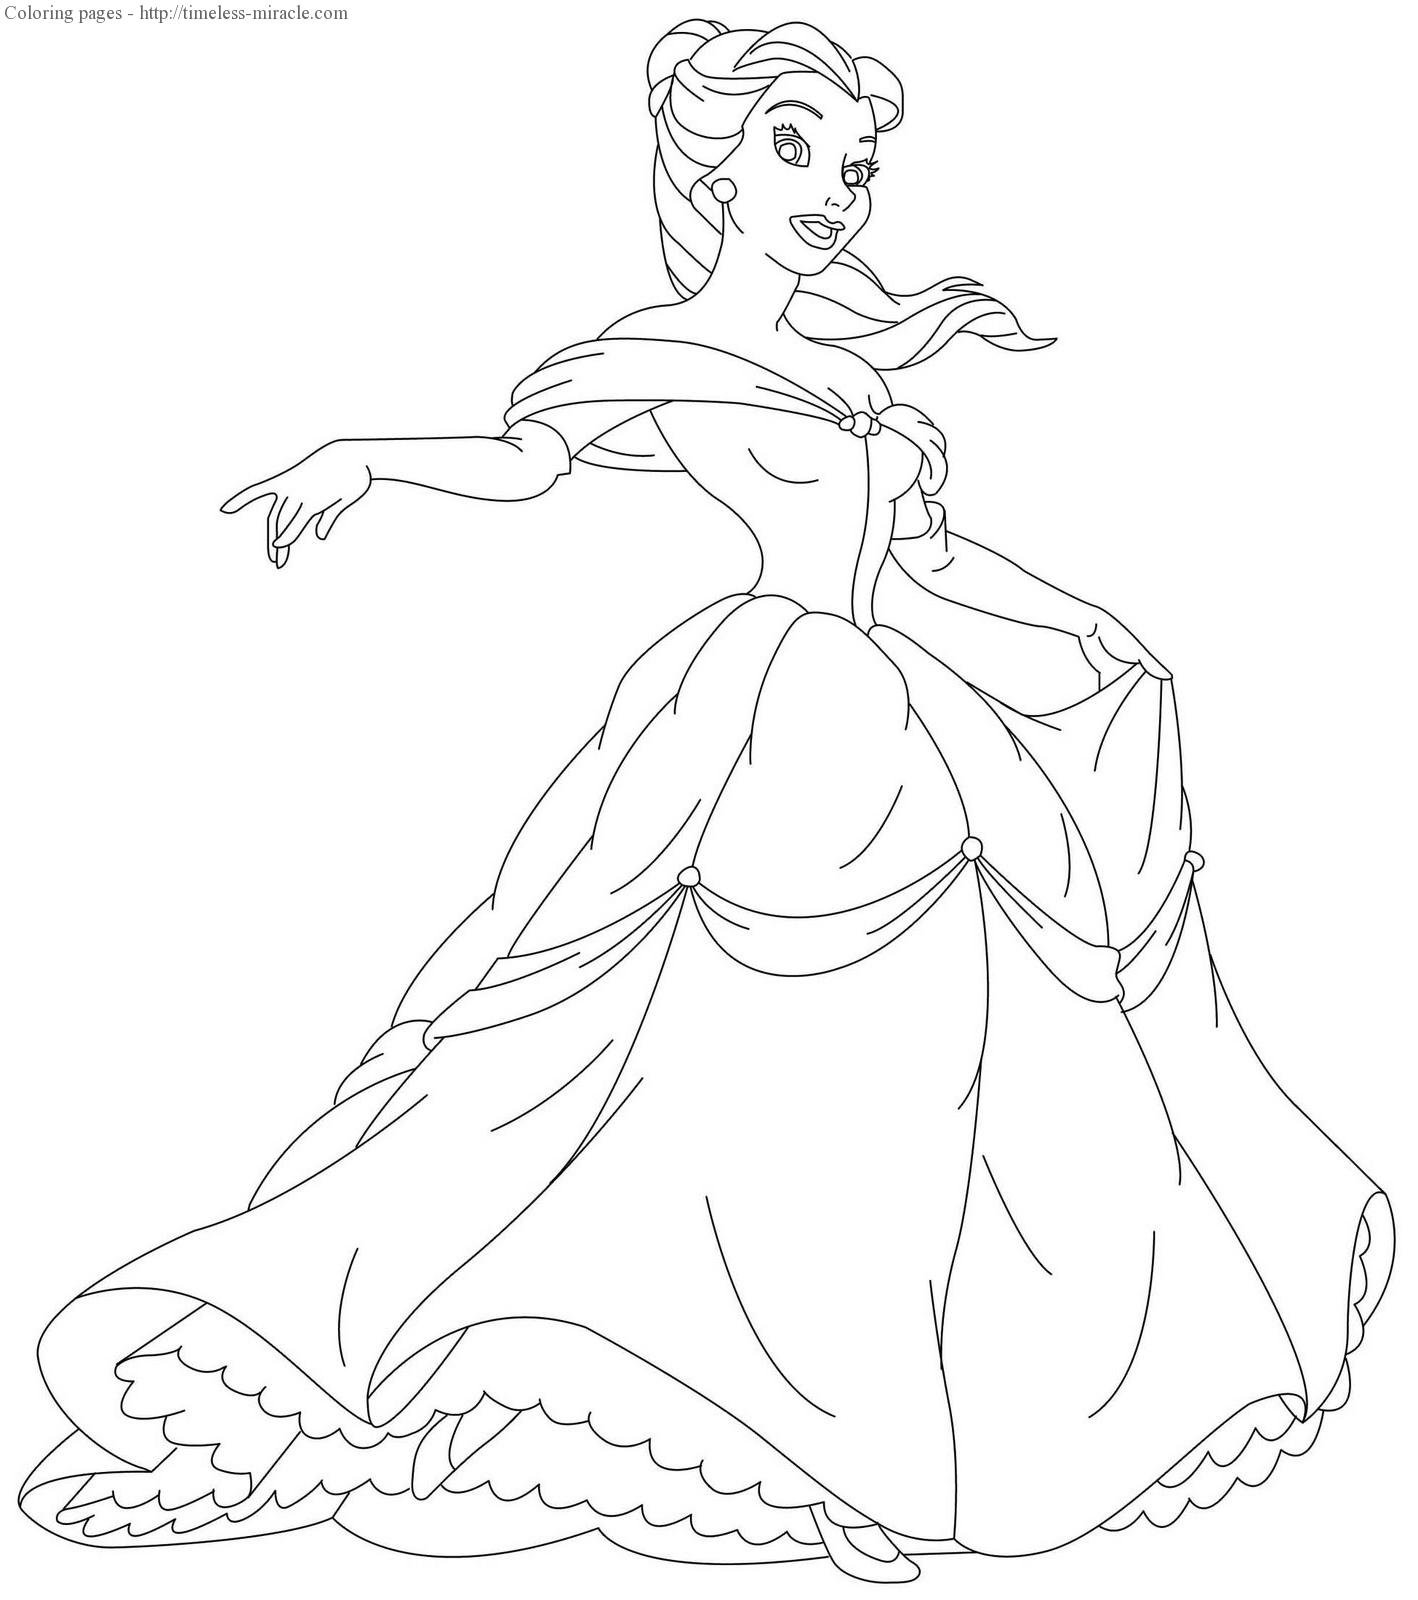 - Disney Princess Colouring Pages Online - Timeless-miracle.com